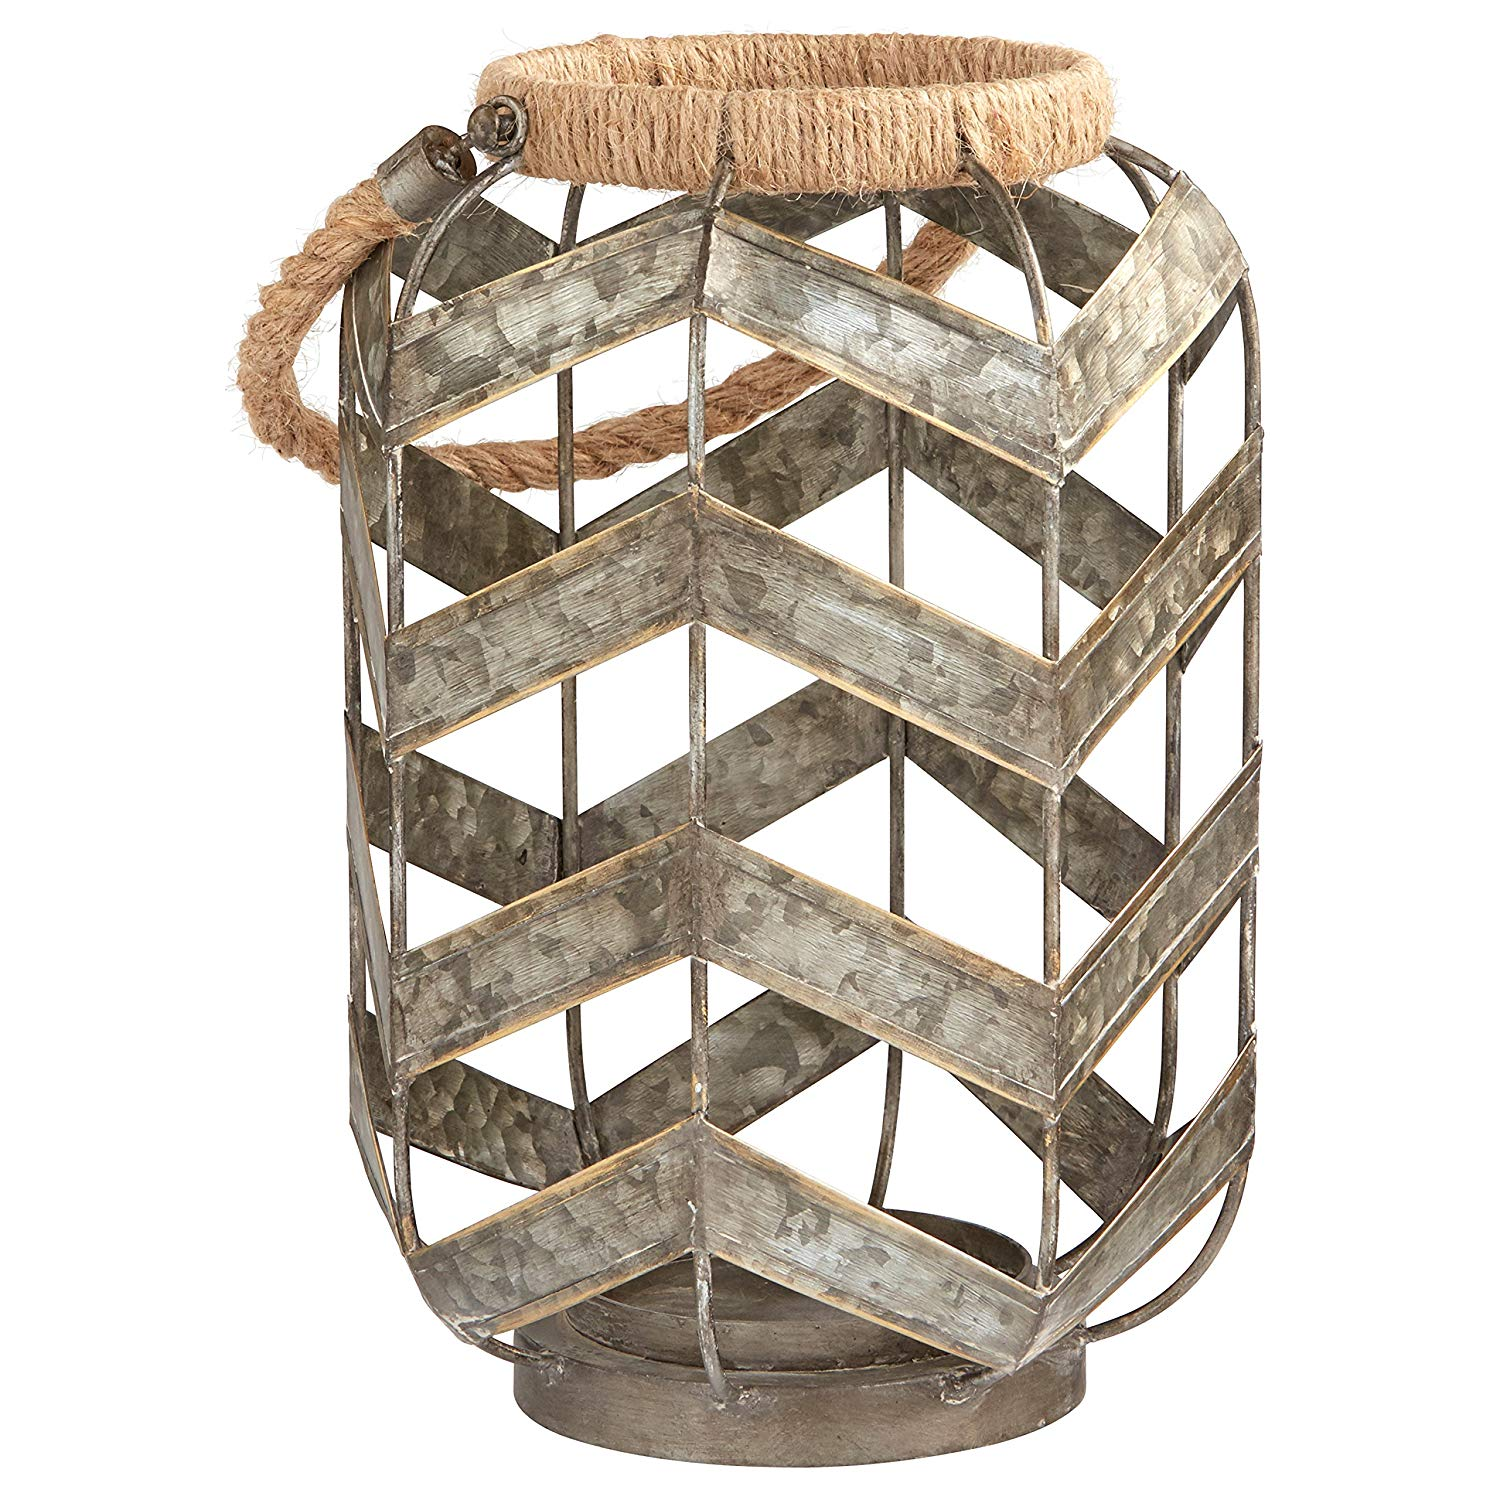 Add Stone & Beam Rustic Farmhouse Metal Jar and Rope Candle Holder to a grouping on your mantle or entryway table to add pattern and texture to your space.